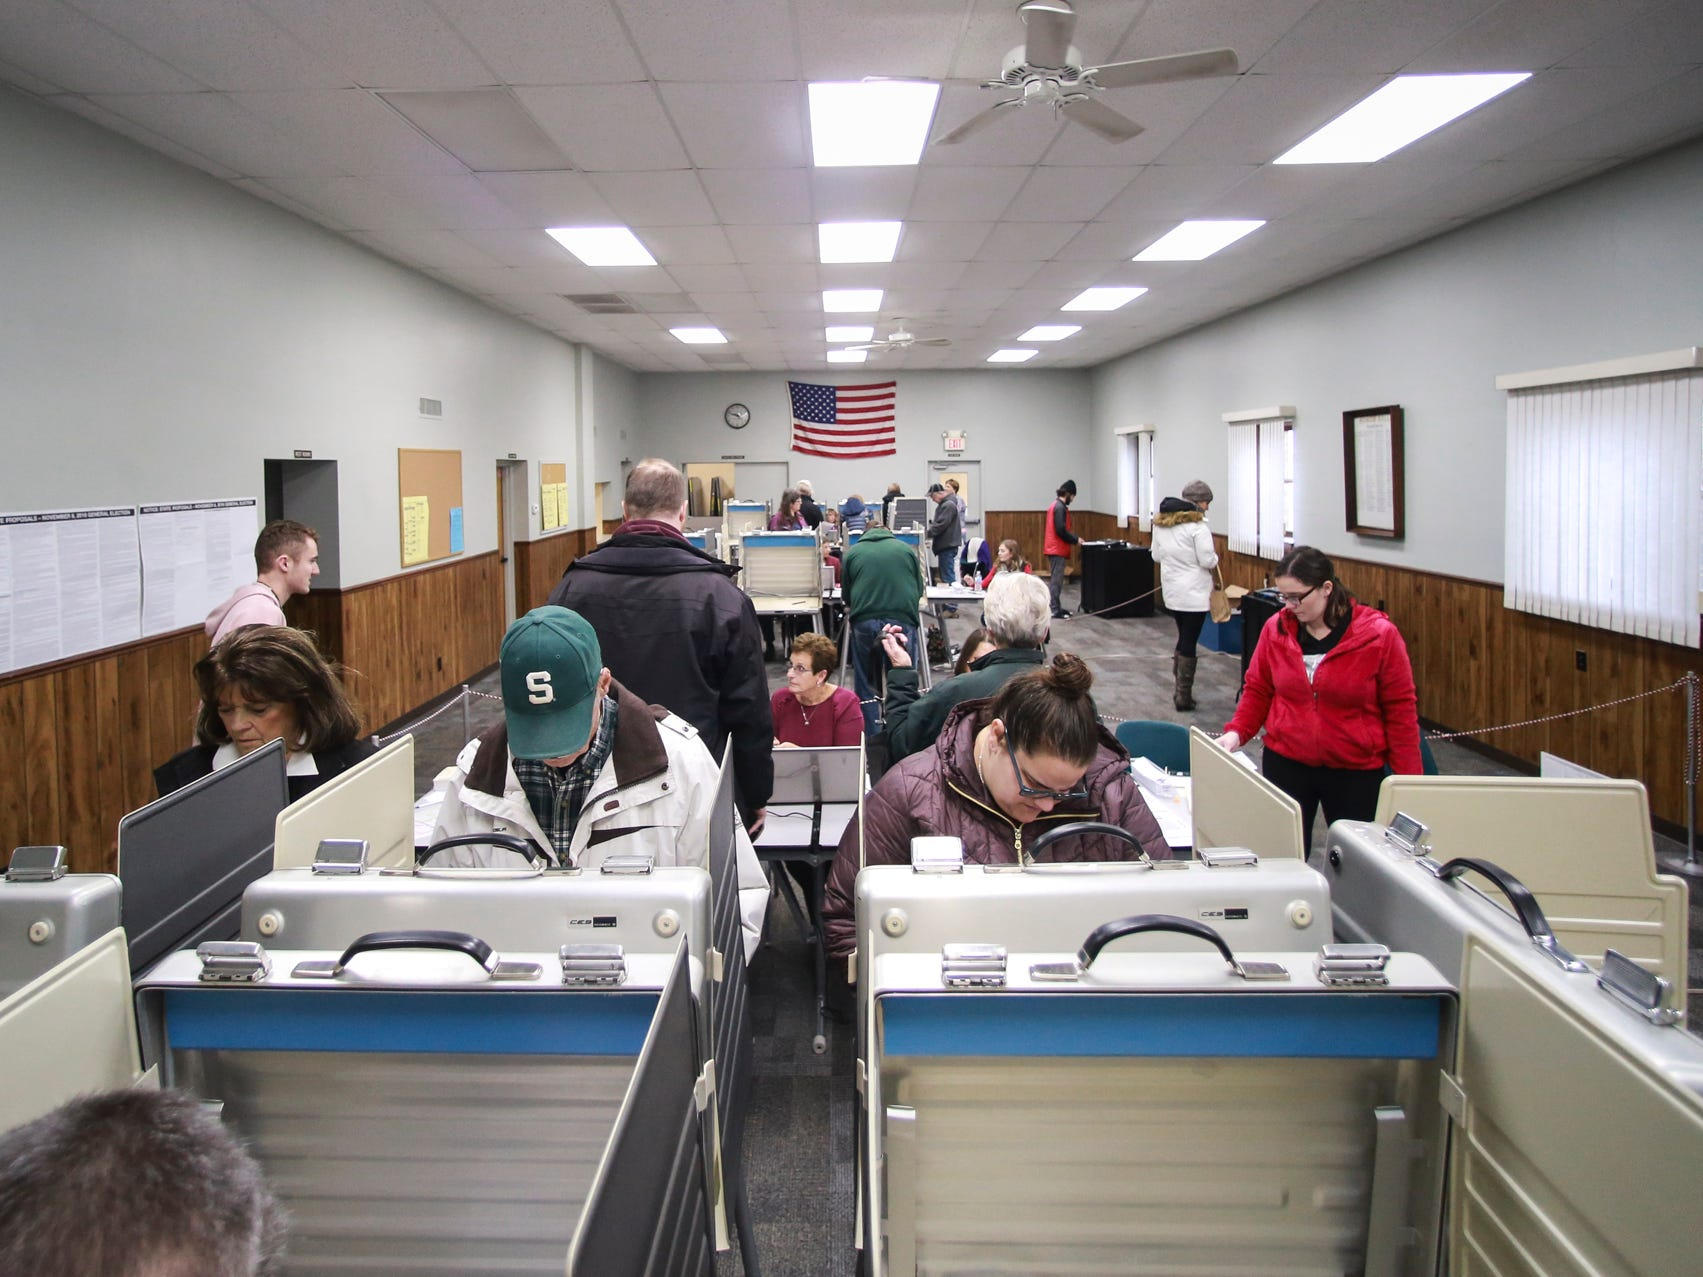 People cast their midterm votes at the Alaiedon Township Hall in Mason, Tuesday afternoon, Nov. 6, 2018, for the 2018 midterm elections.